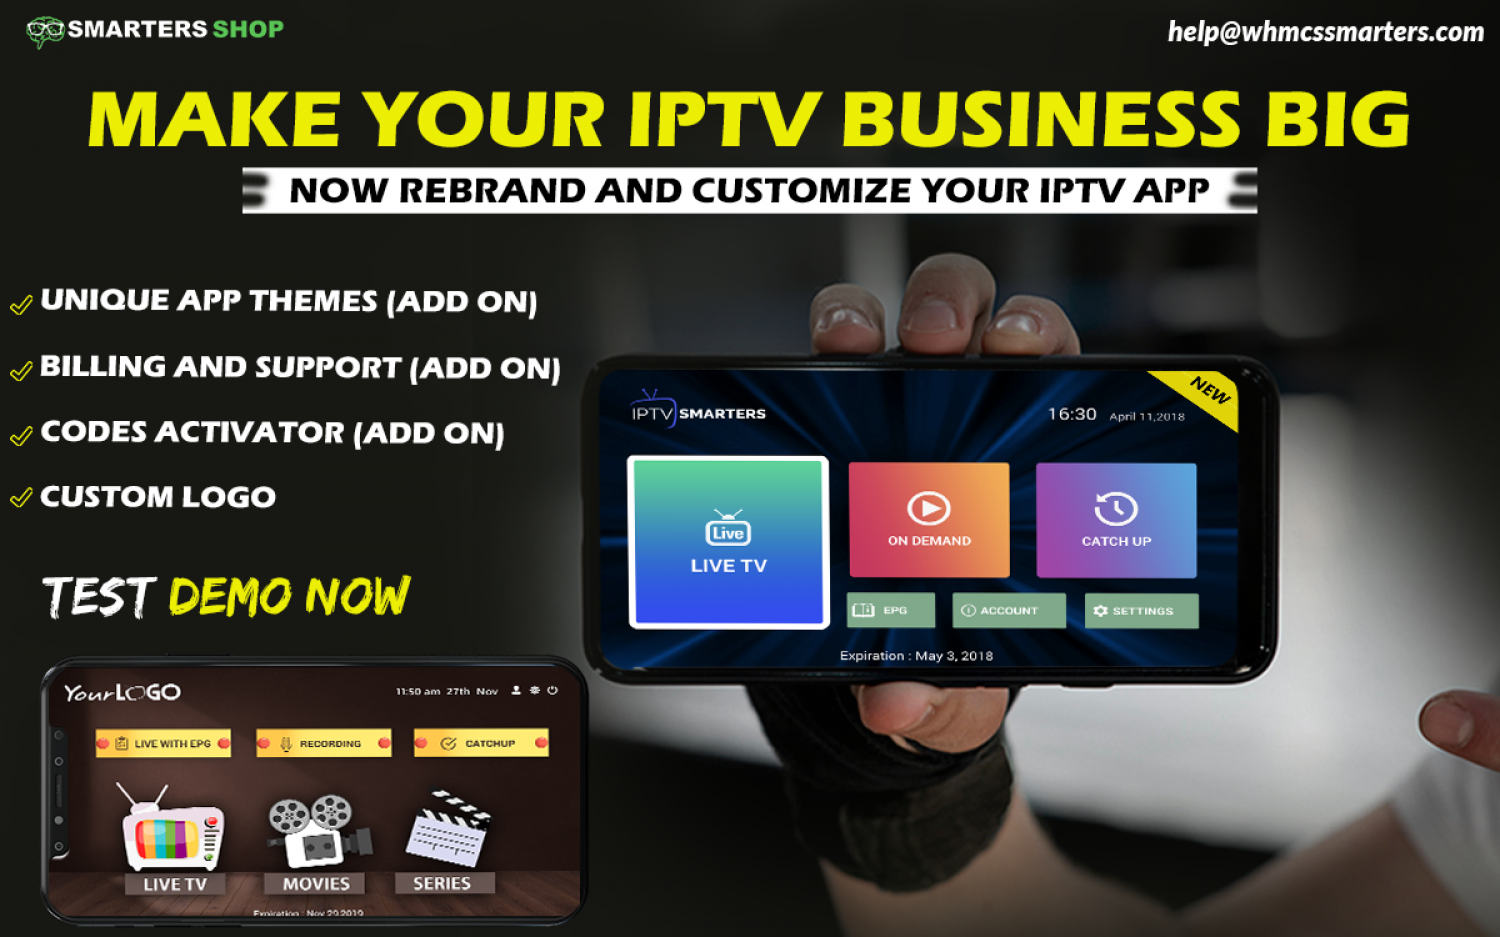 REBRAND AND CUSTOMIZE YOUR IPTV APPS HERE Infographic